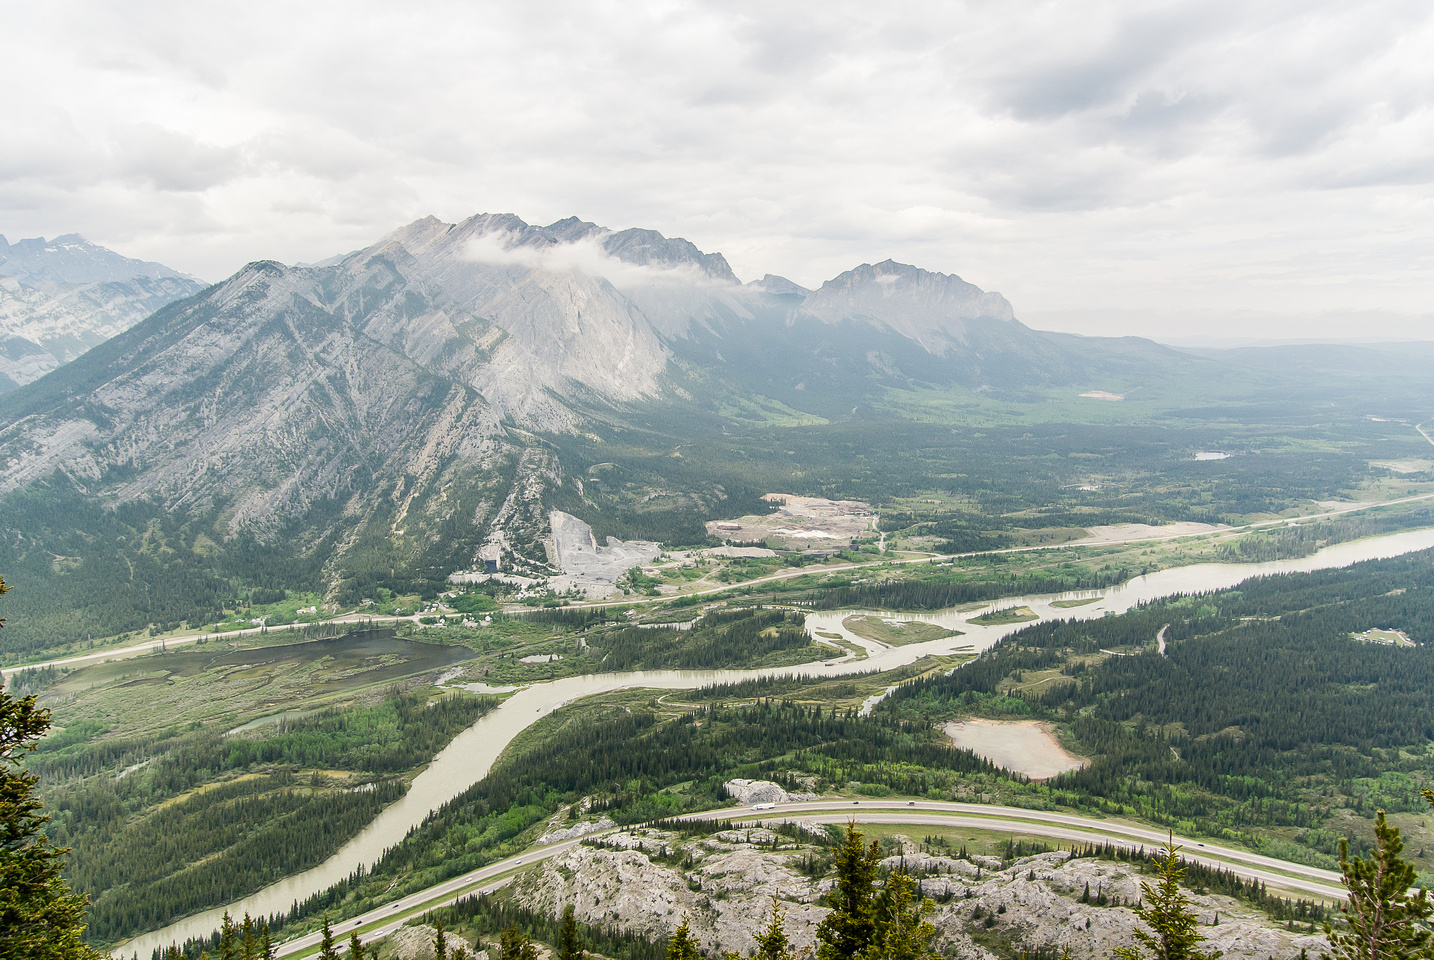 Looking north over the Trans Canada highway at the Goat Traverse which includes Door Jamb, Loder and Goat Mountain (L) and Yamnuska (C)